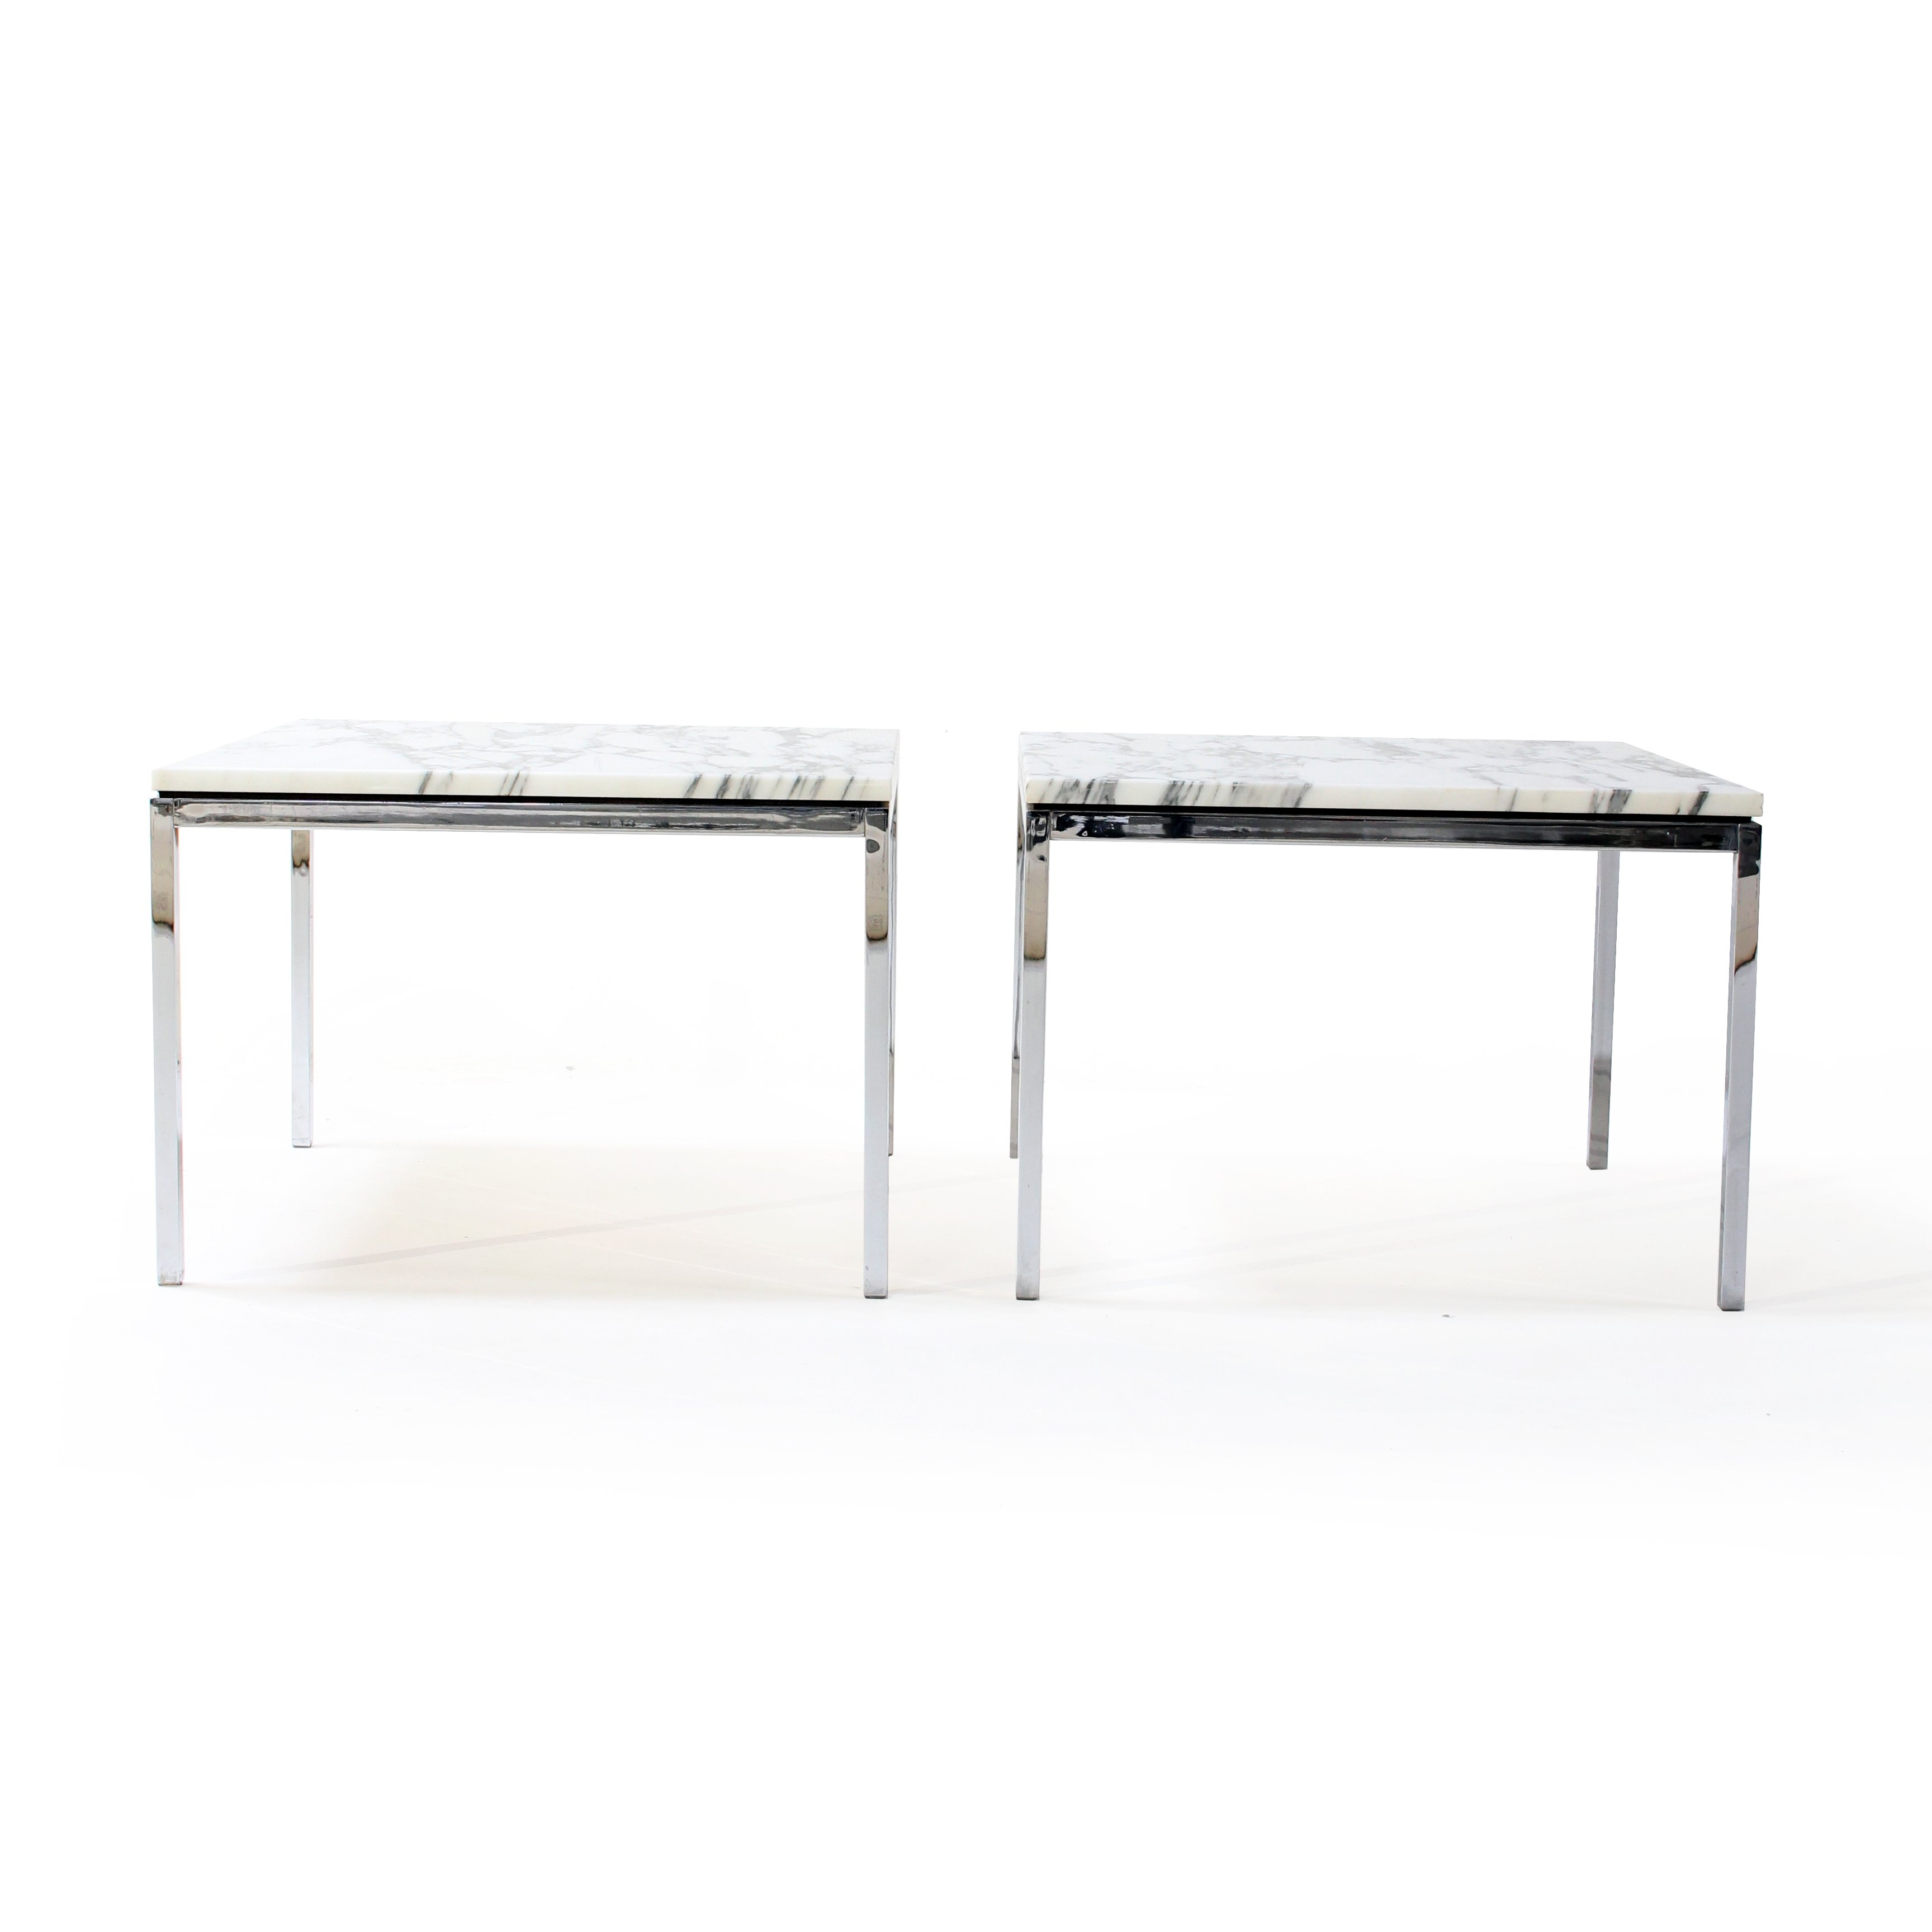 Pair Of Side Tables By Florence Knoll For Knoll 1960s 94812 [ 3456 x 3456 Pixel ]